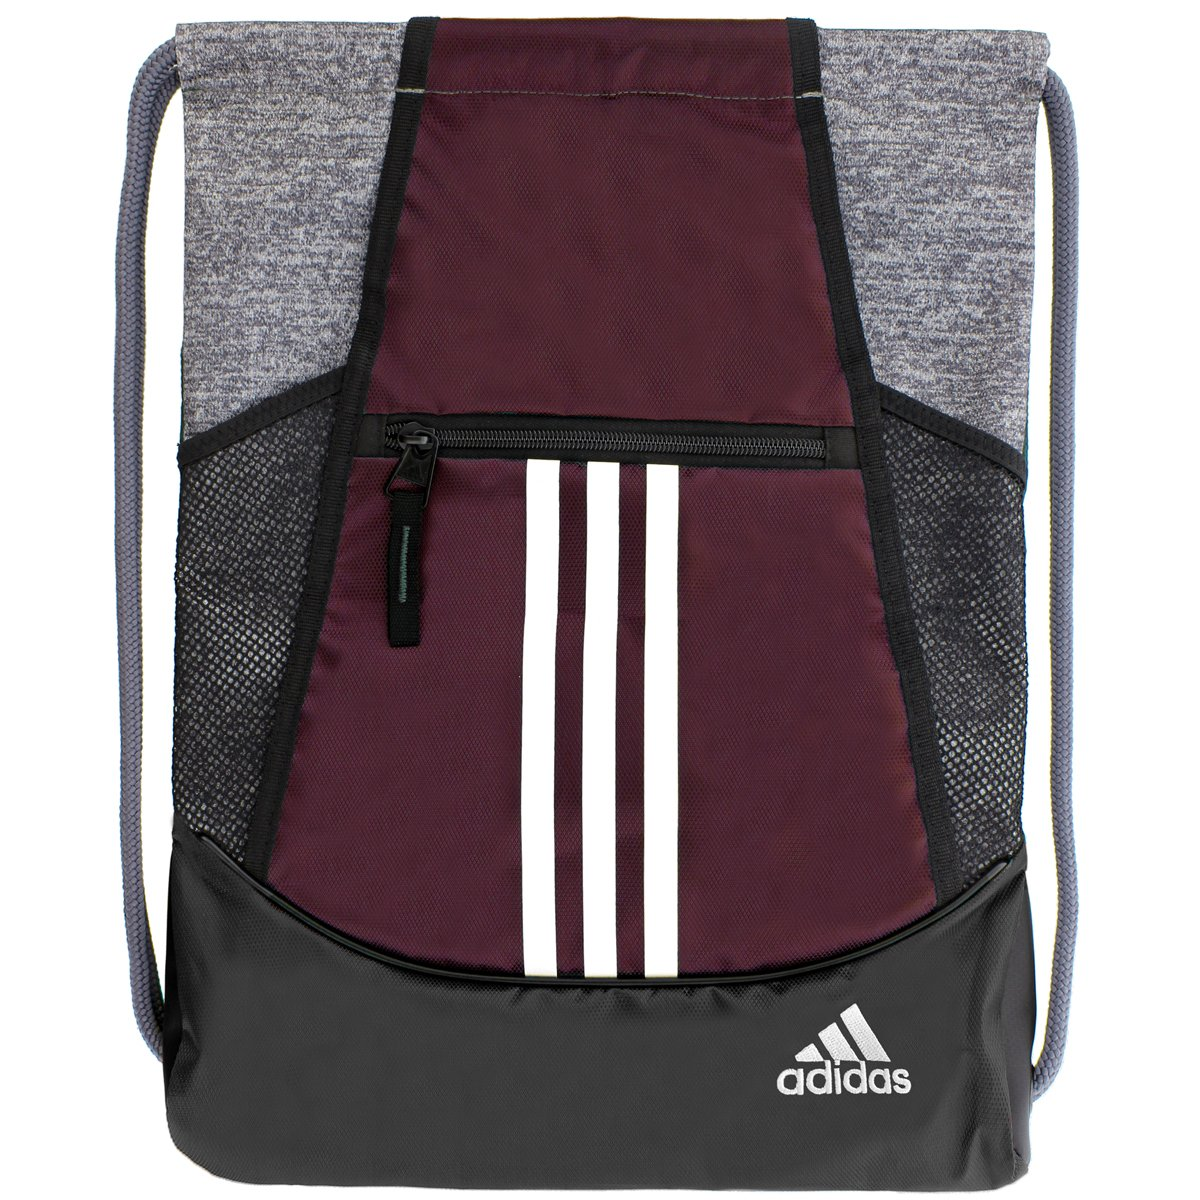 adidas Alliance II Sack Pack a4fa5707d613b